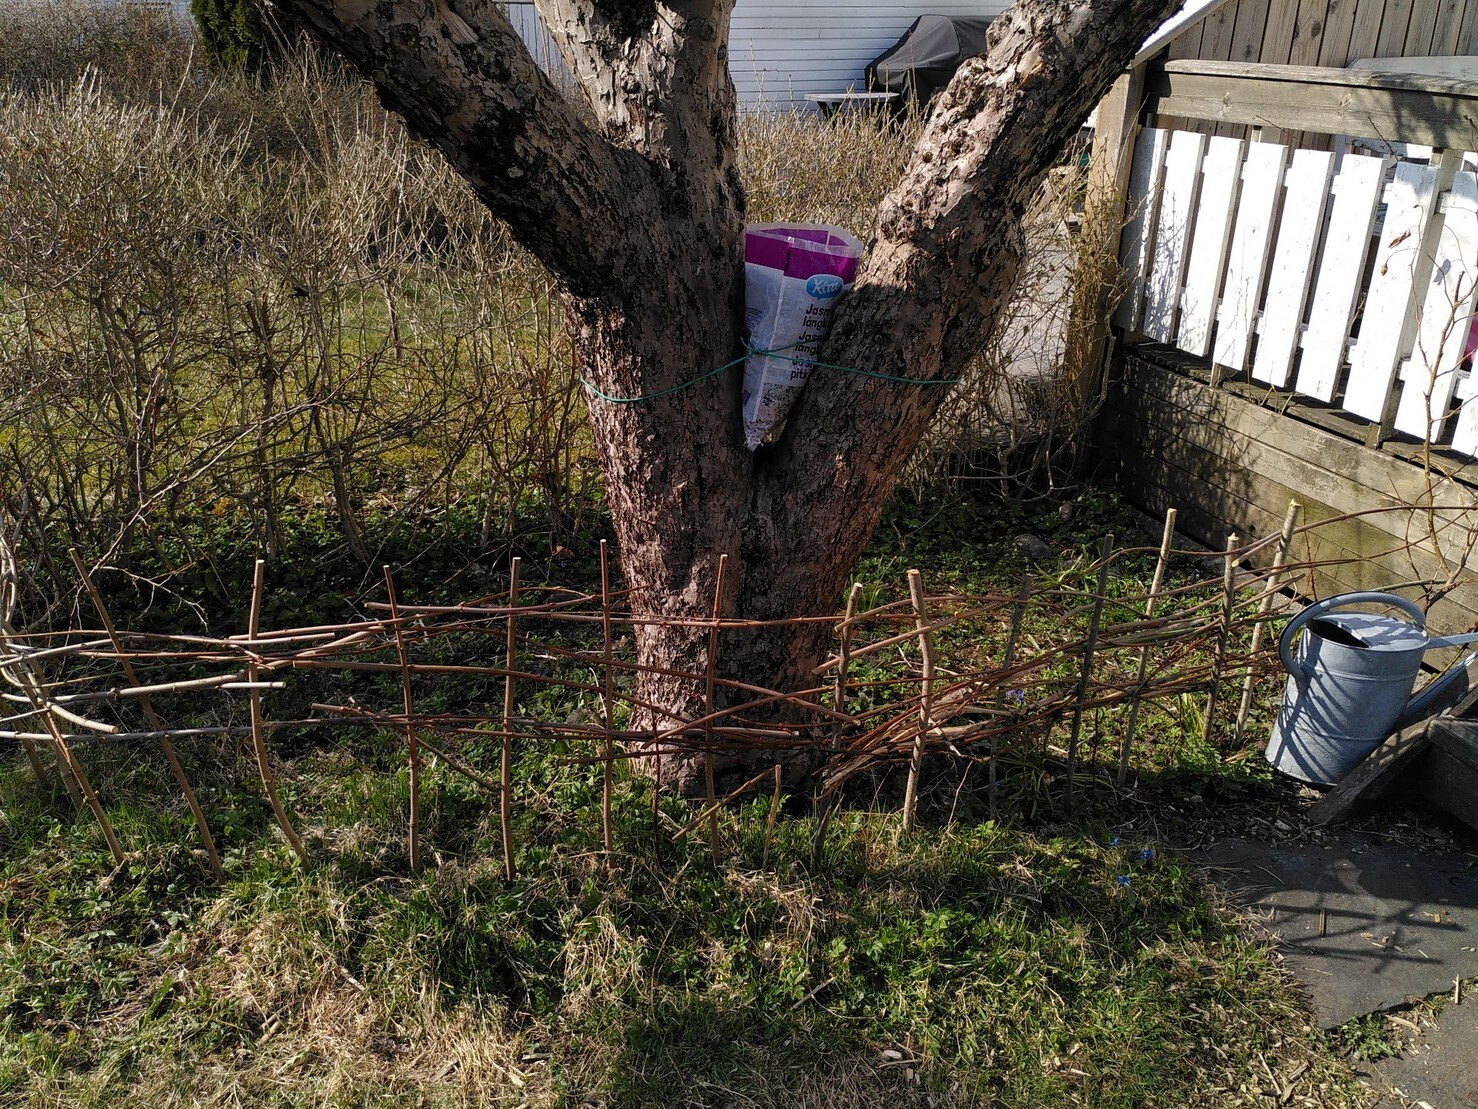 in the apple tree there is a planting container made out of a rice sack